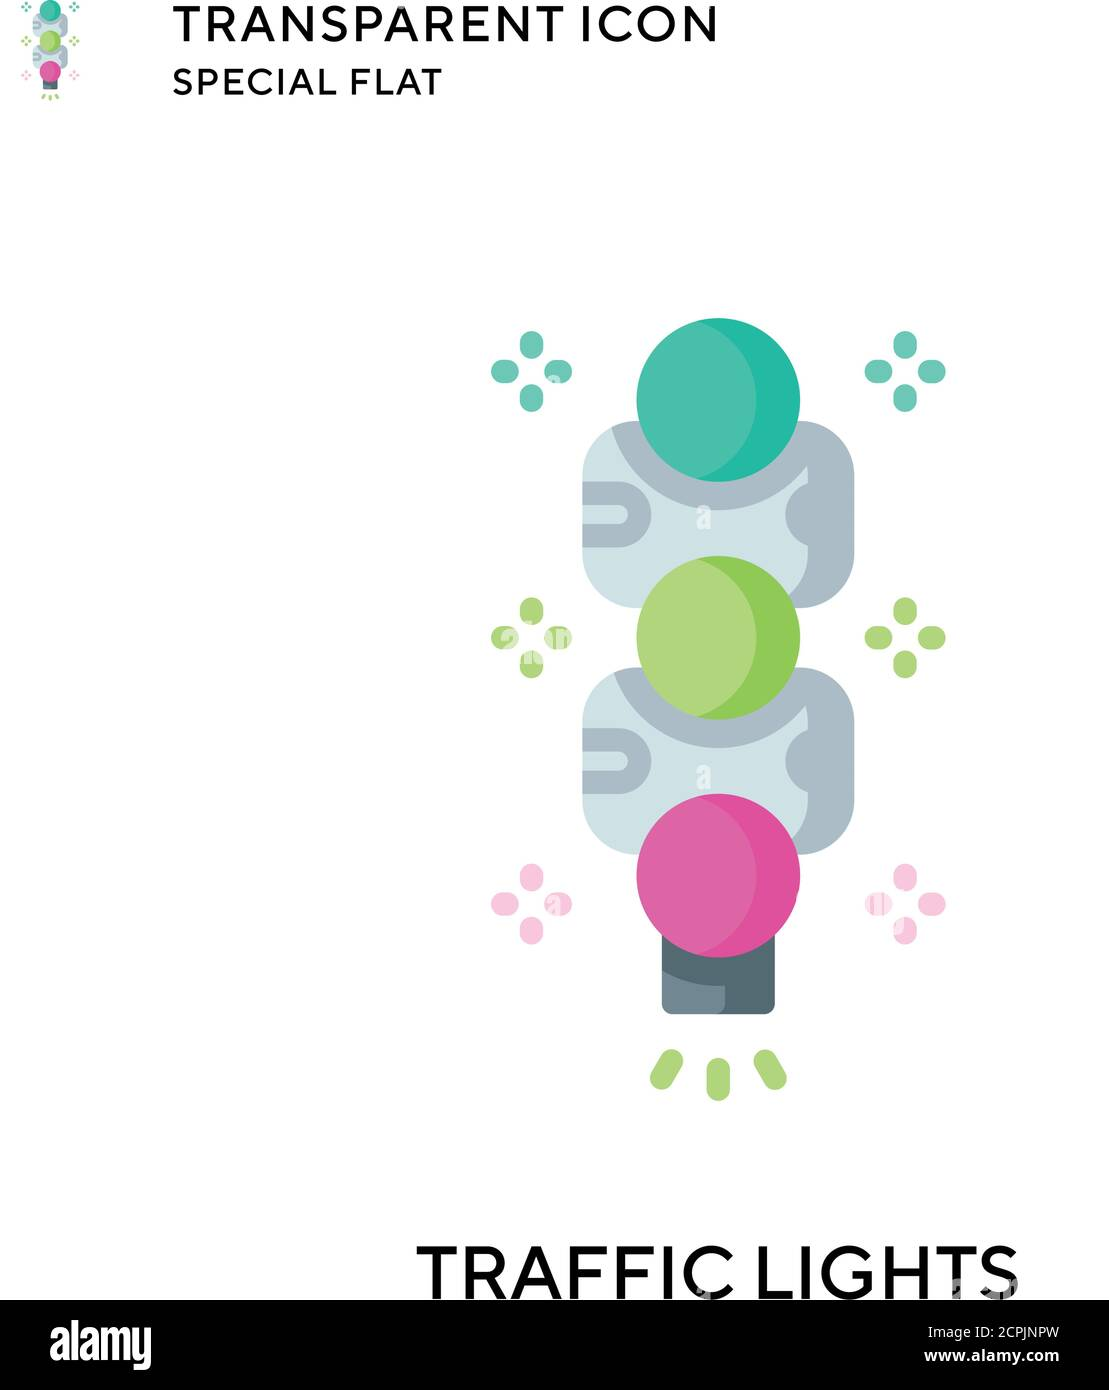 Traffic lights vector icon. Flat style illustration. EPS 10 vector. Stock Vector